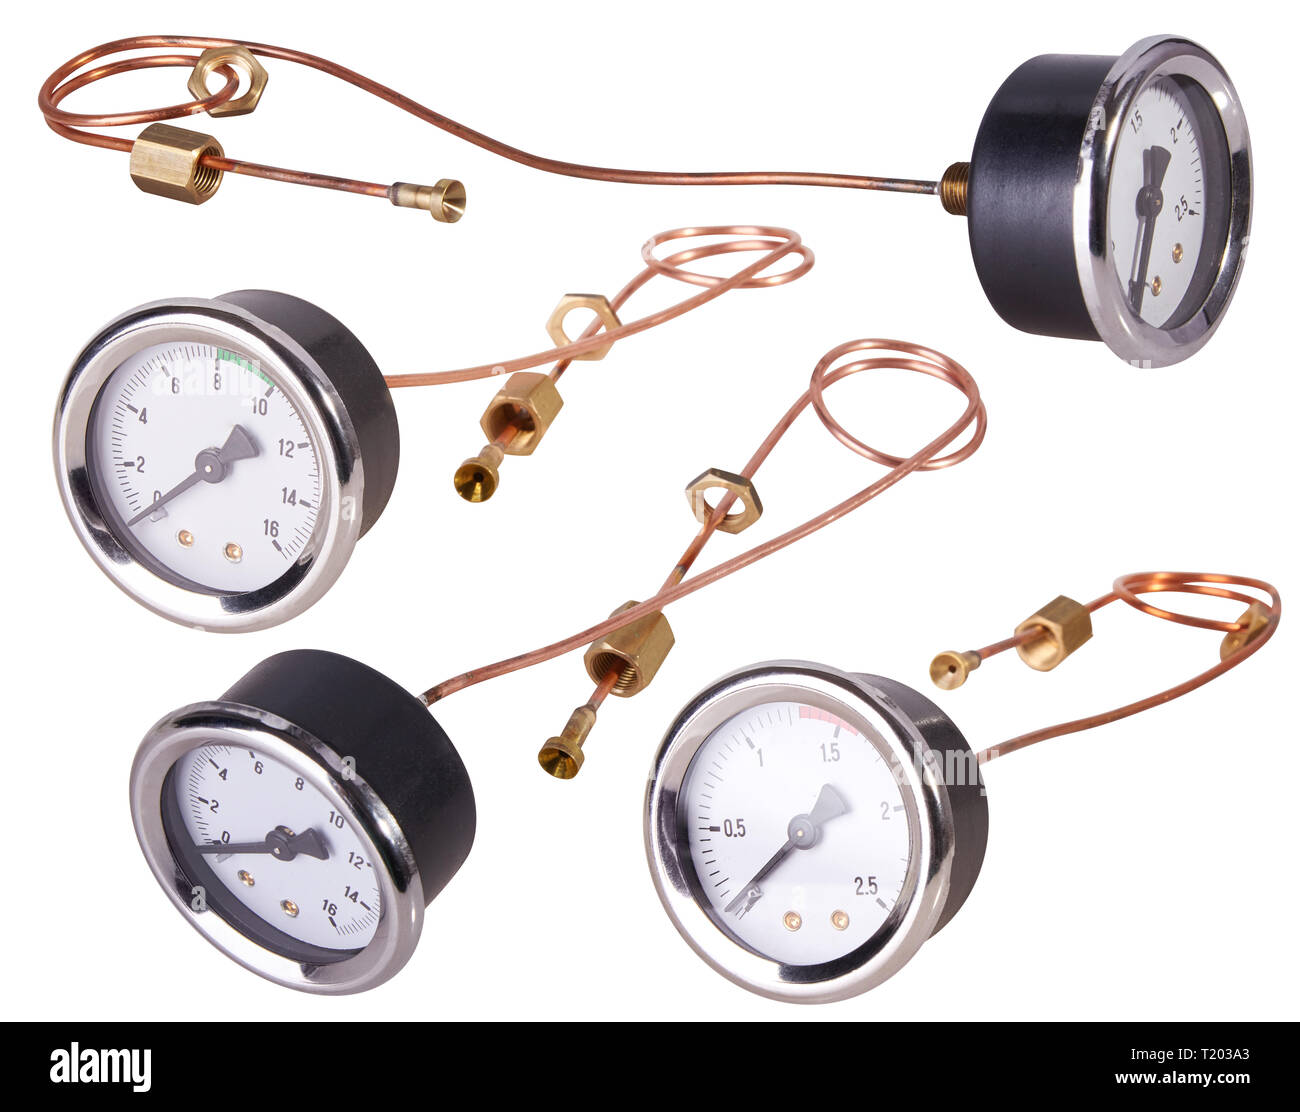 A Pressure Gauge. Isolated - Stock Image